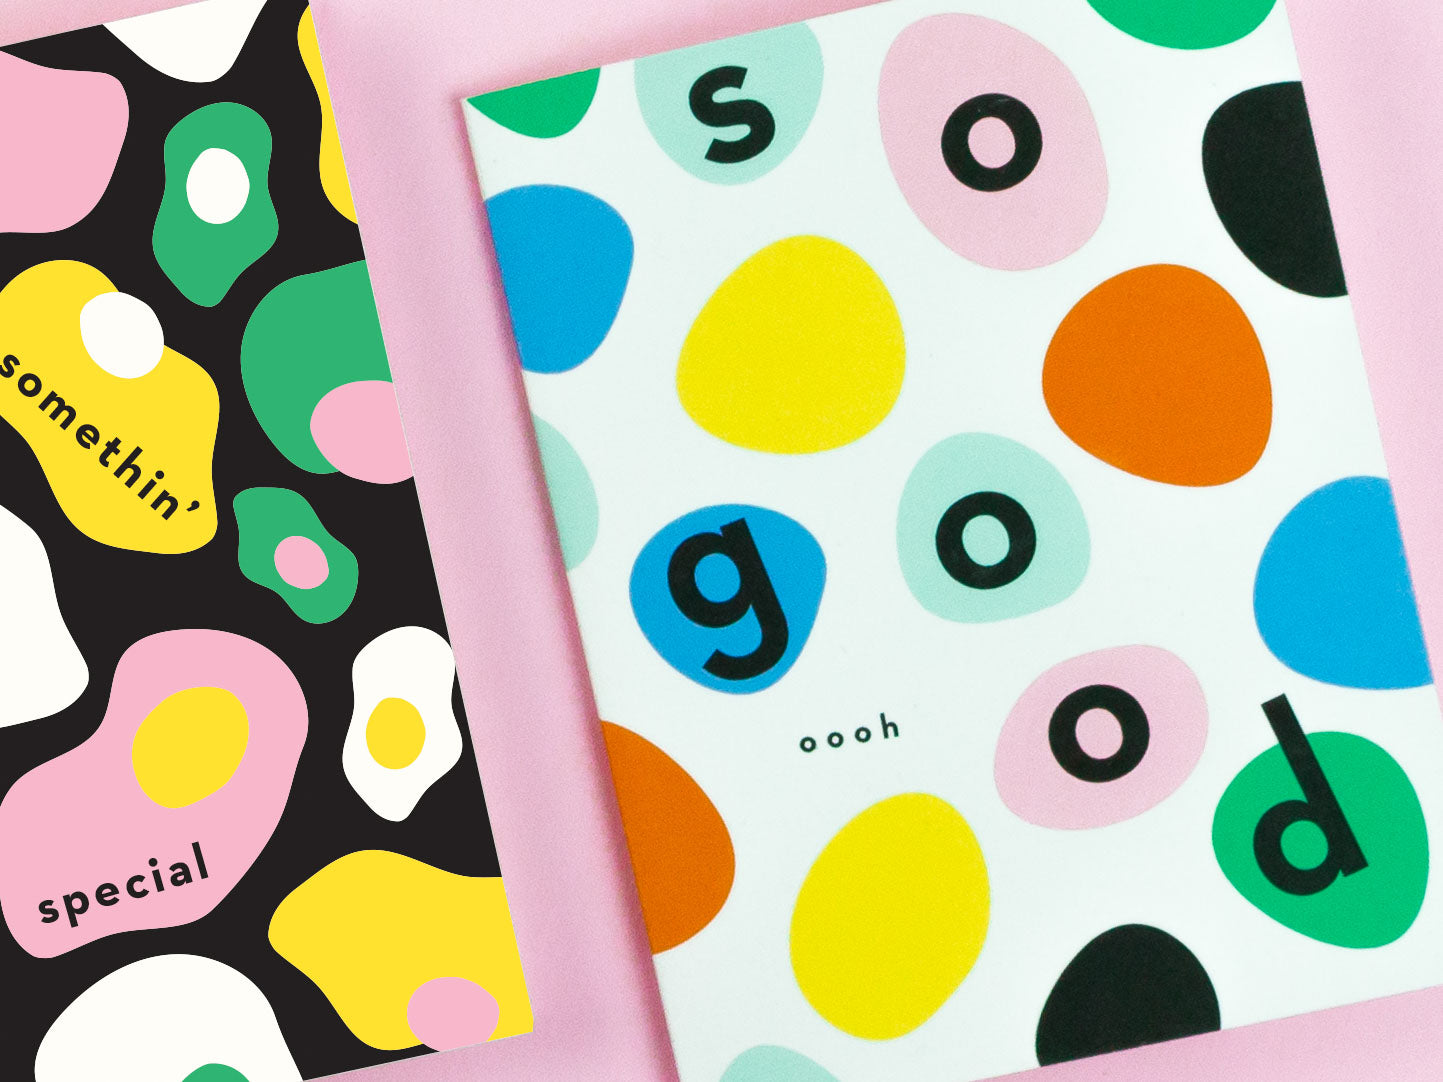 So Good colorful bouncing dots thank you card or congrats card. Made in USA by @mydarlin_bk